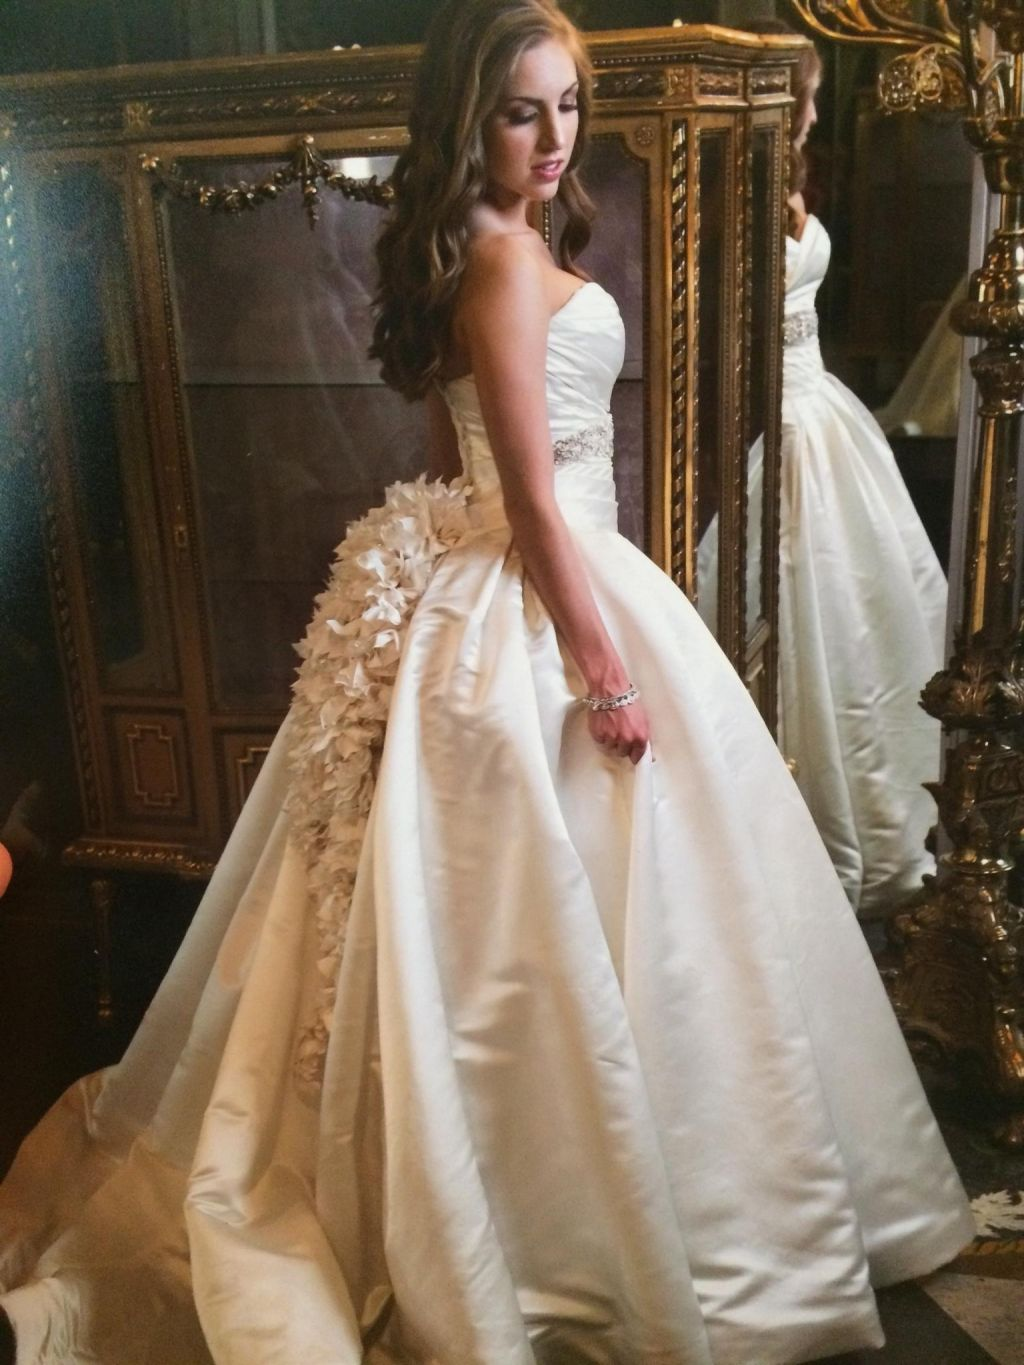 Nina P Wedding Dresses : Pnina tornai buy this dress for a fraction of the salon price on